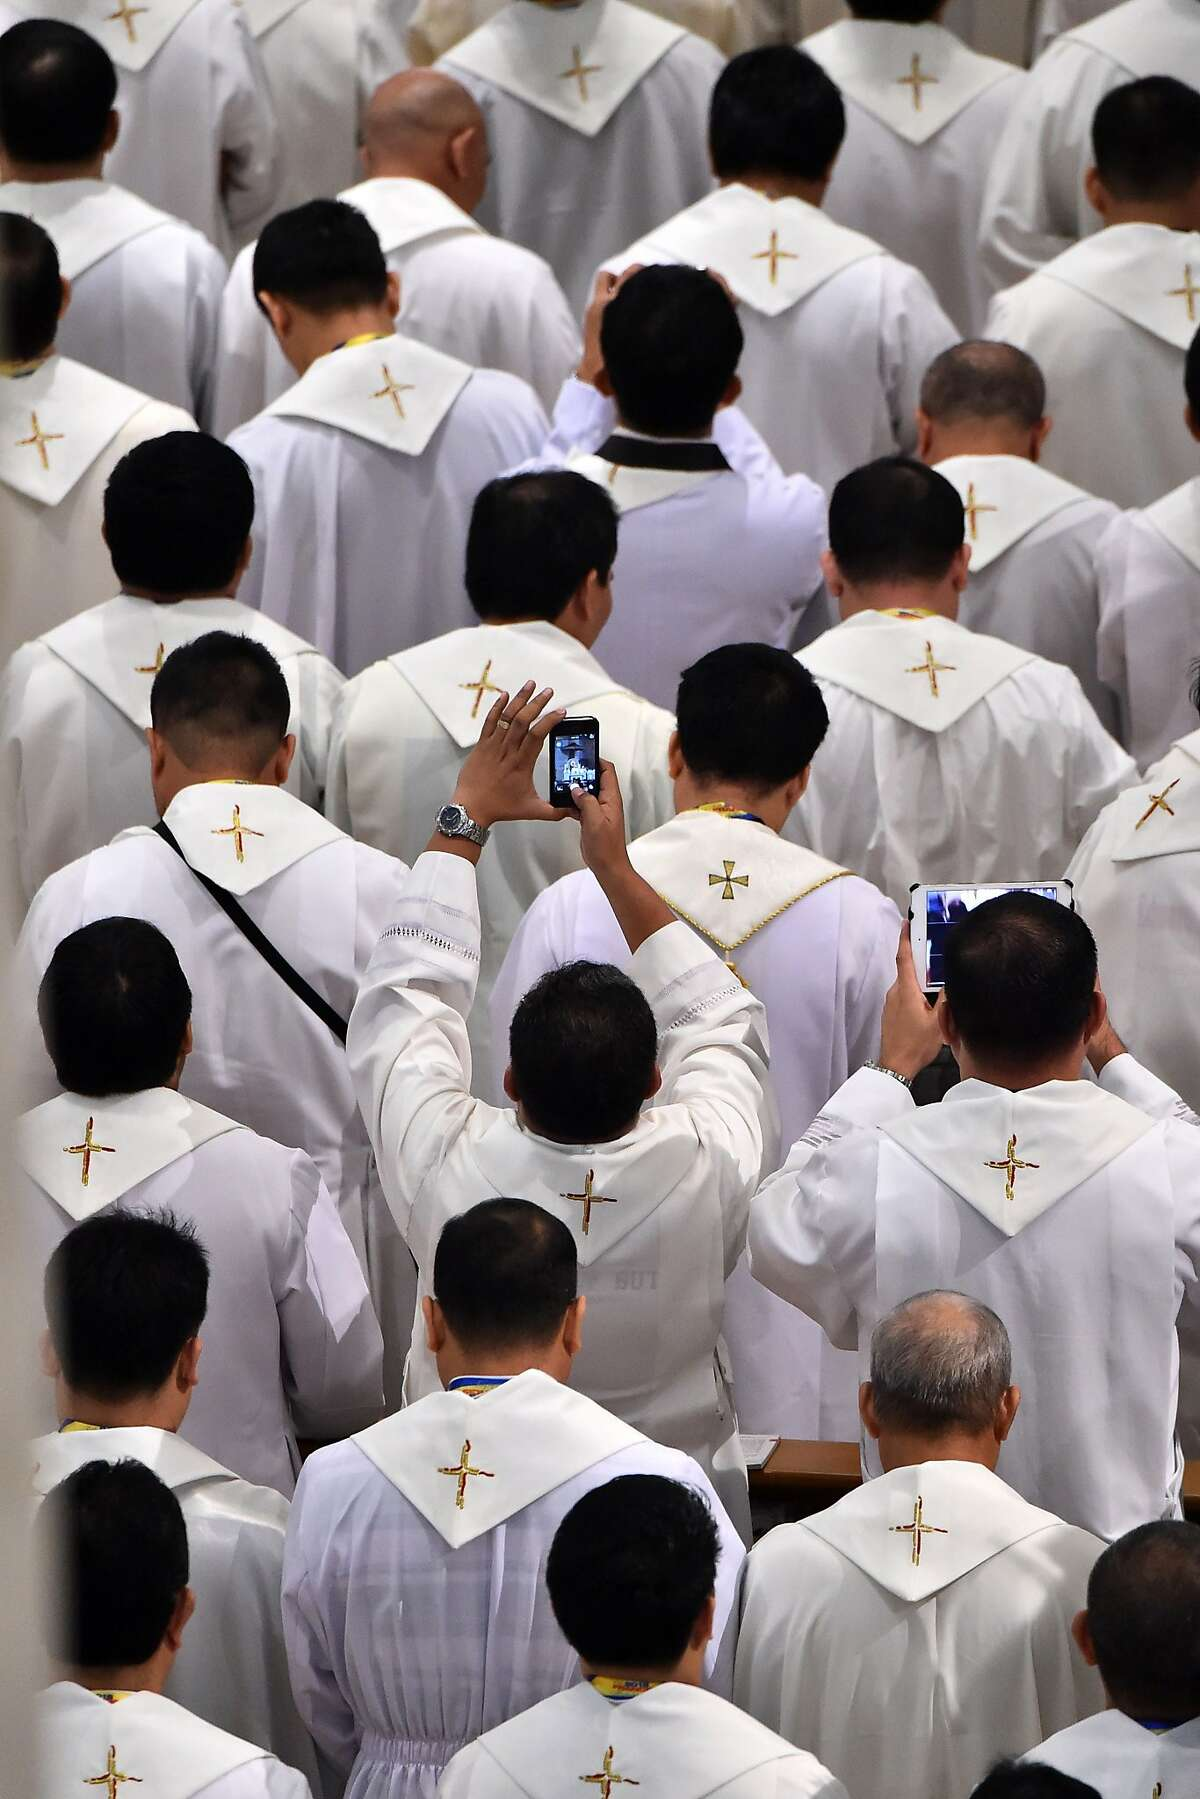 Francis said last year that celibacy for priests